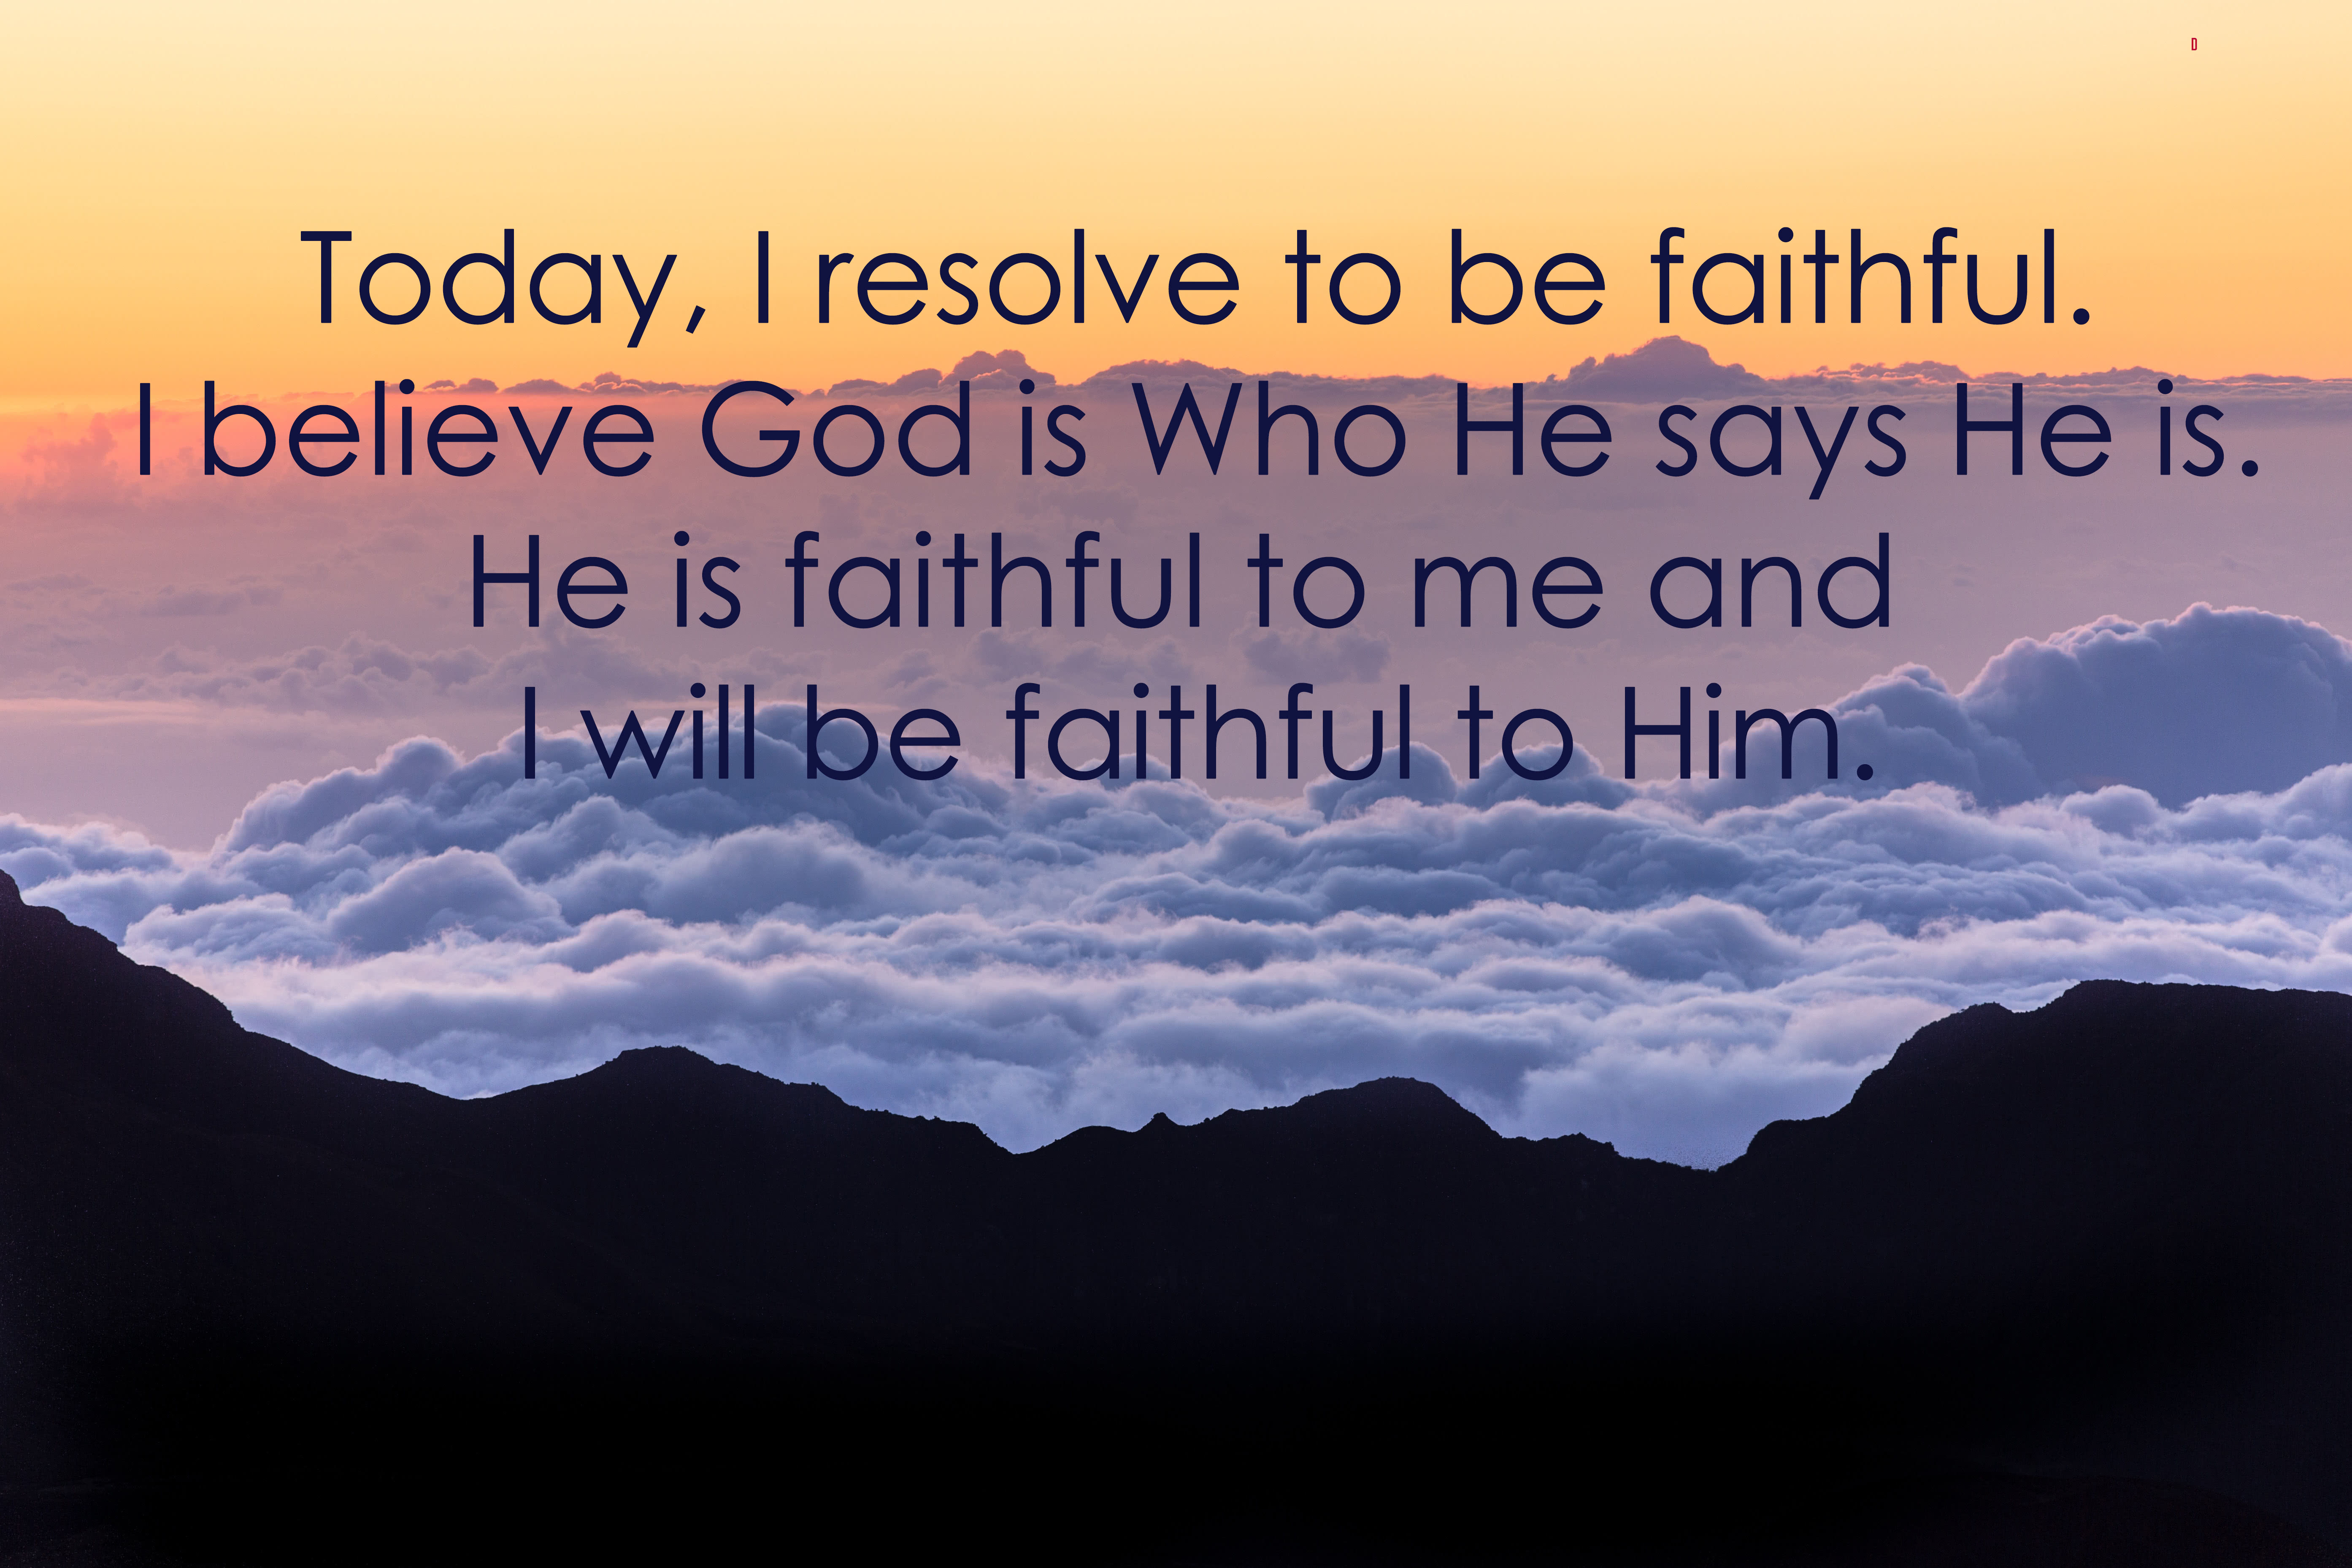 Today I resolve to be faithful, to believe God is Who He says He is, faithful to me and I will be faithful to Him.